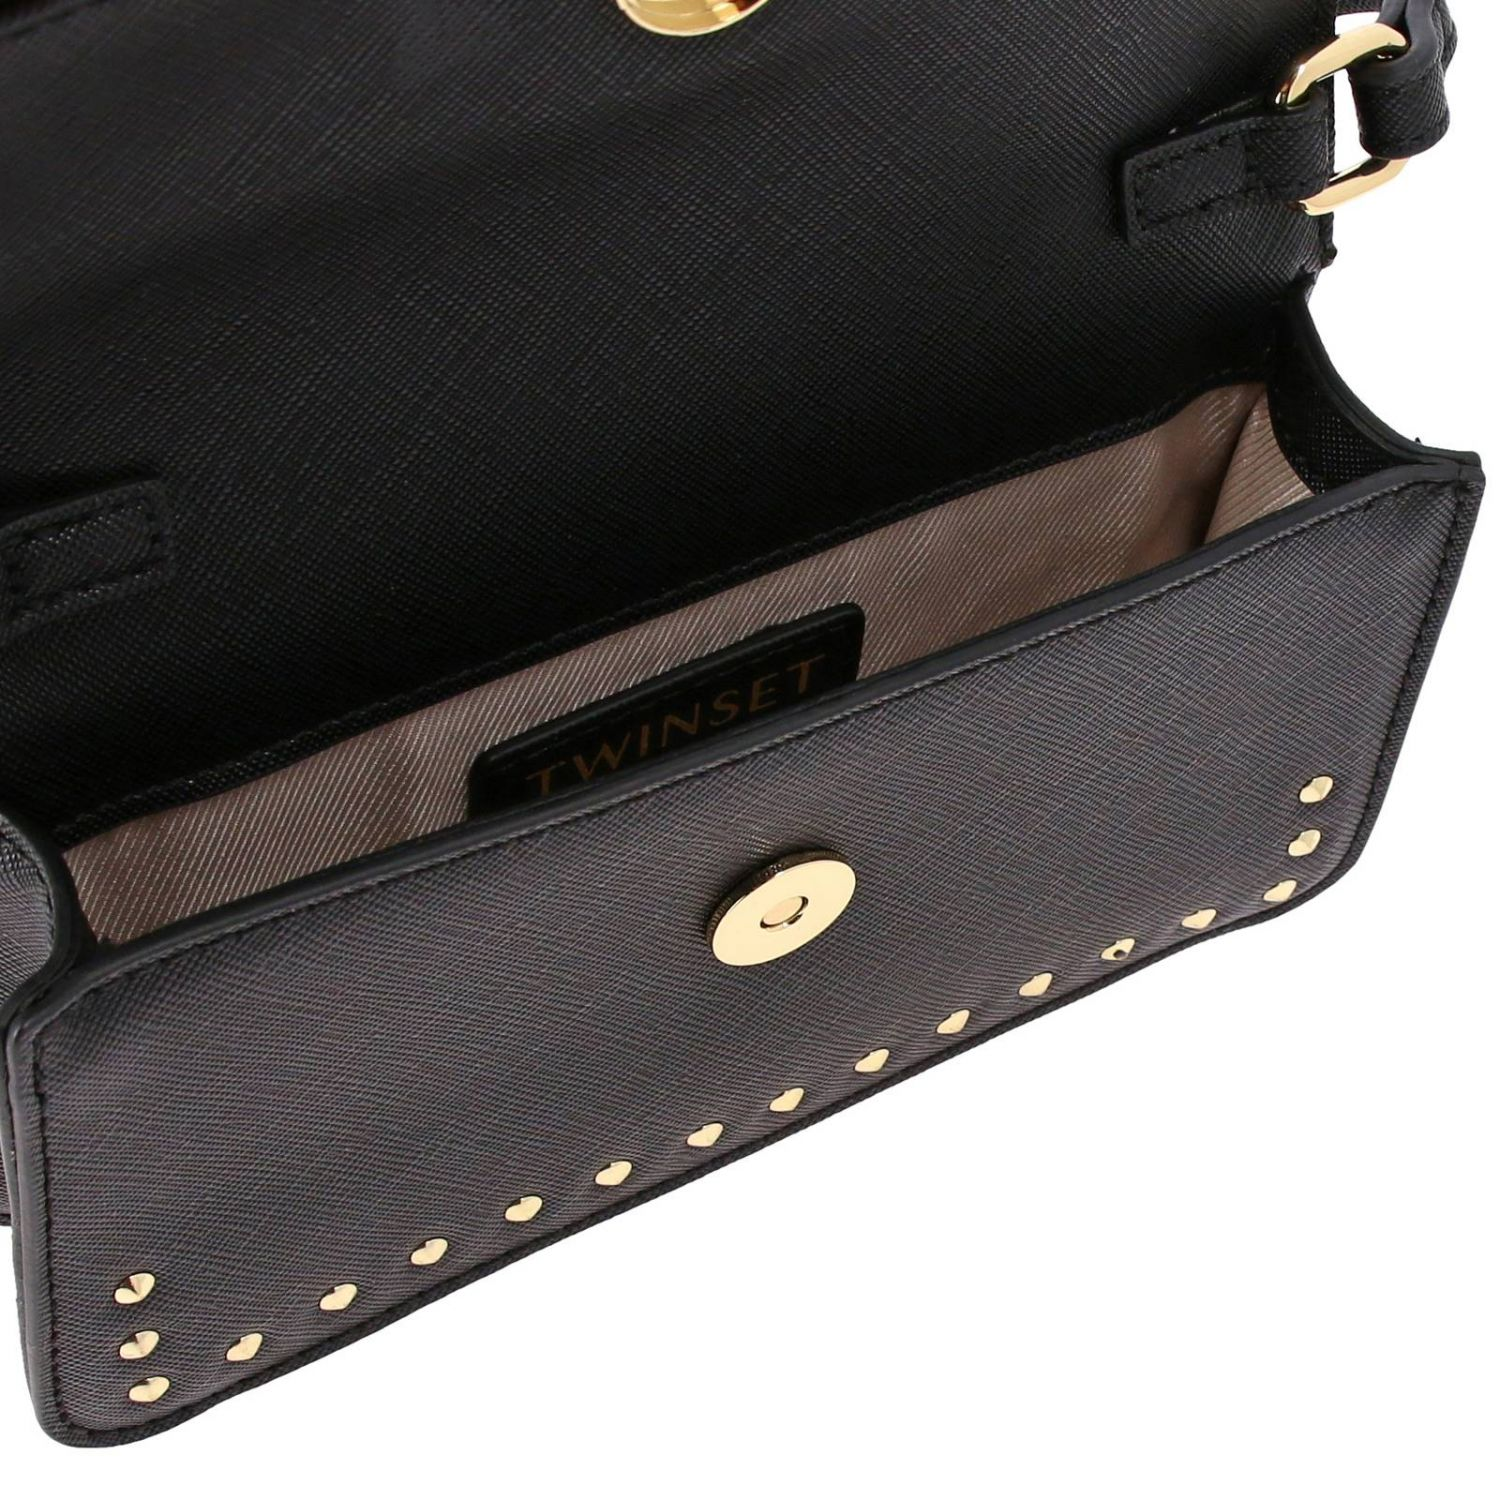 Shoulder strap Twin Set: Twin-set saffiano synthetic leather shoulder bag with logo and studs black 5